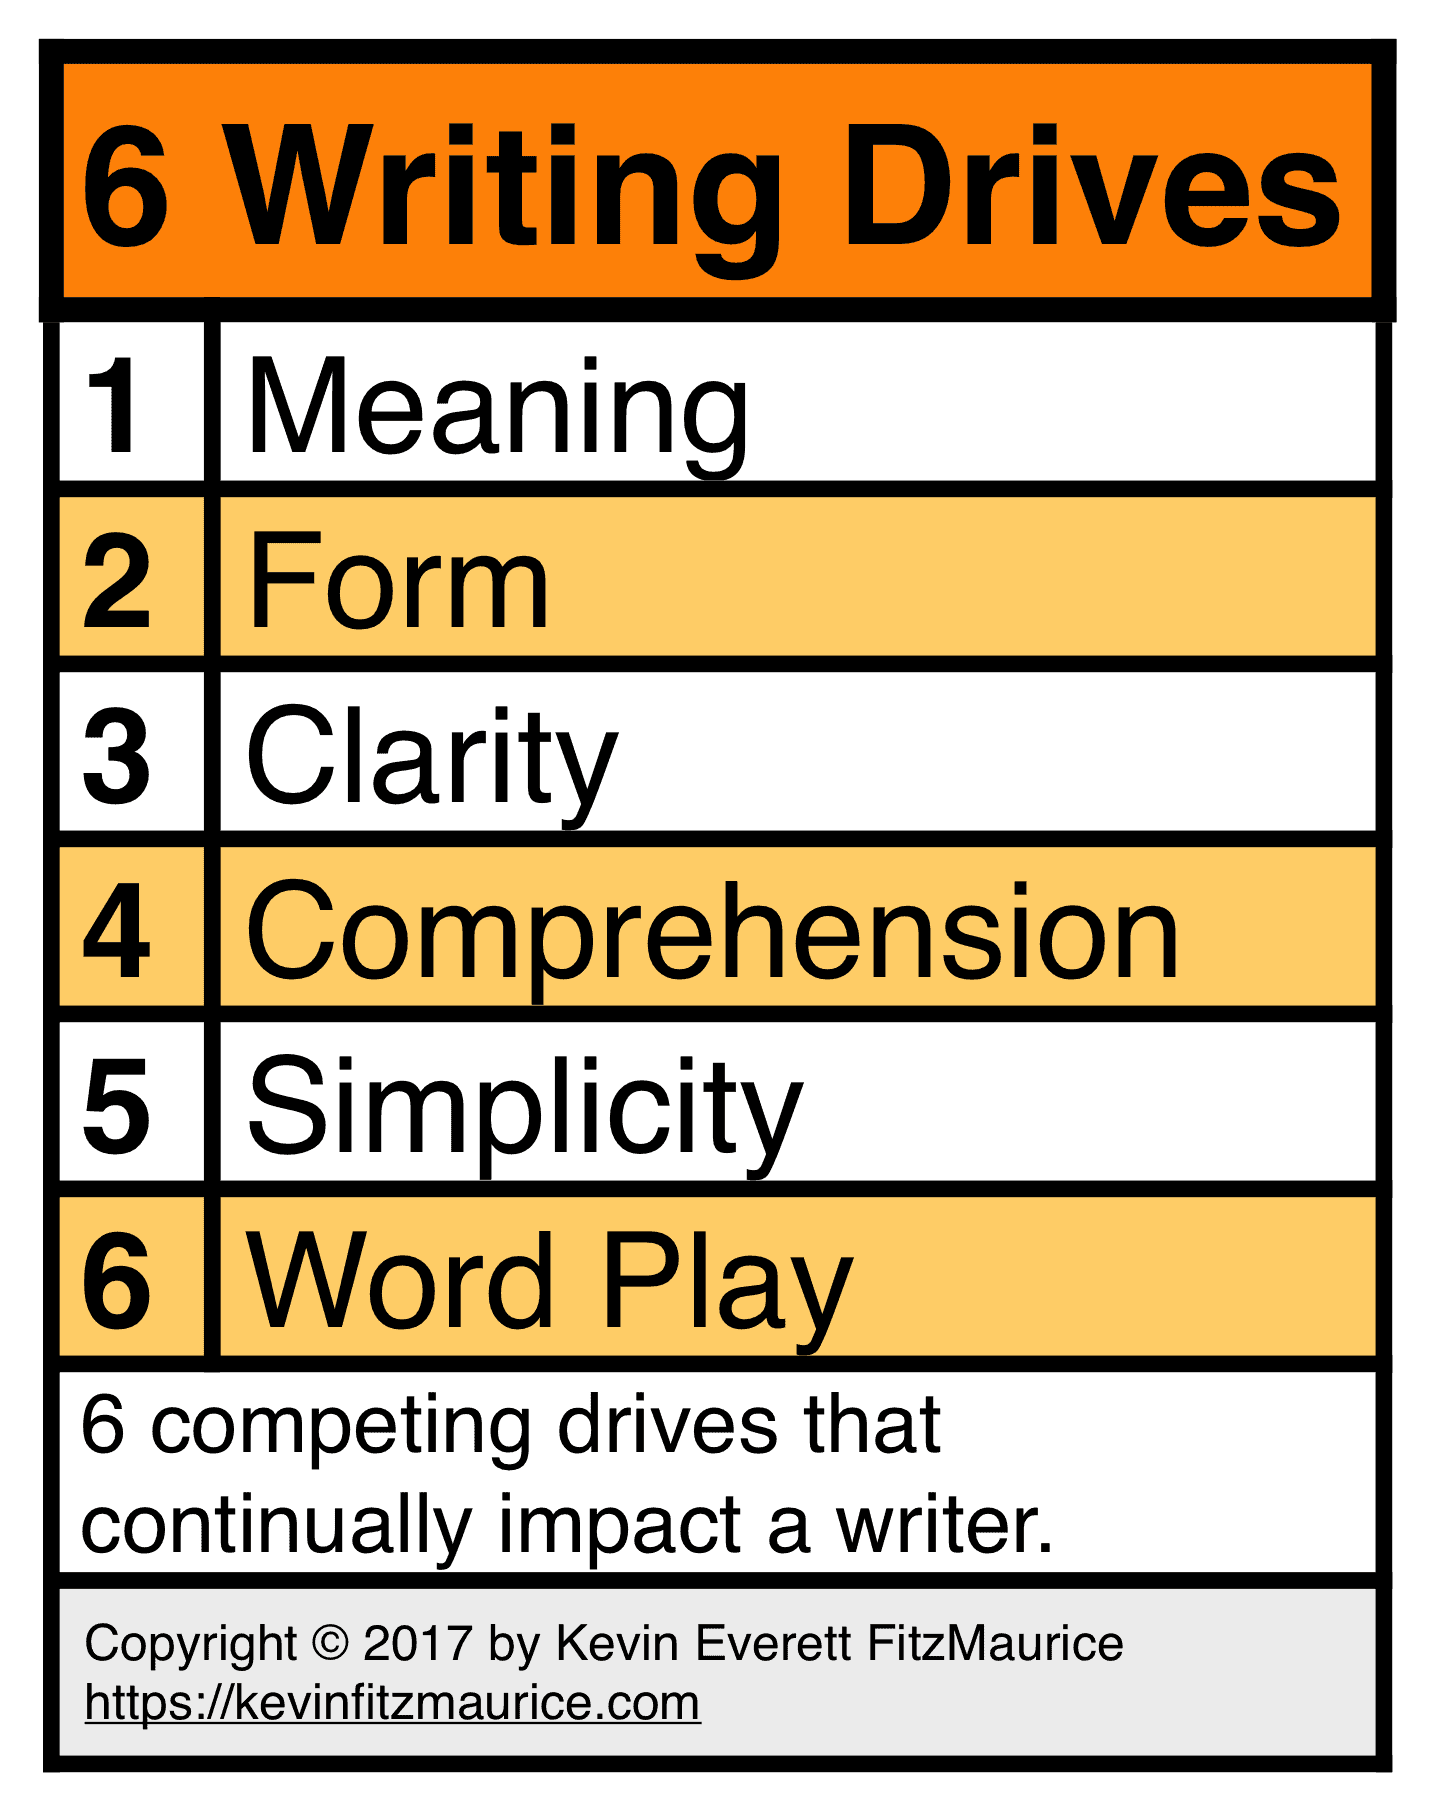 6 Writing Drives from Ego Playground